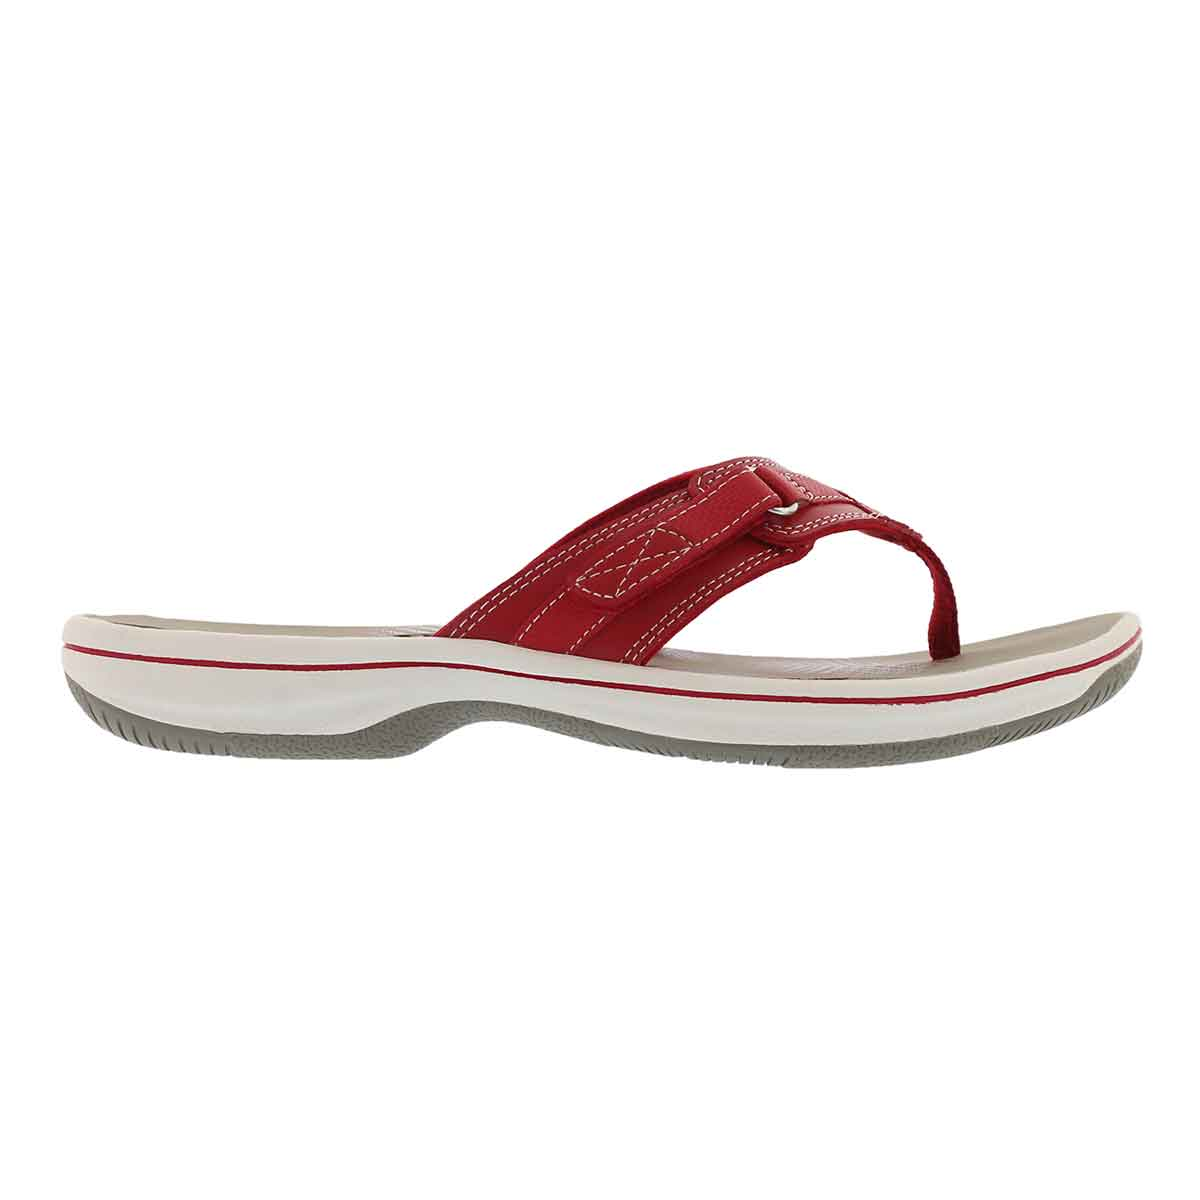 Lds Breeze Sea red thong sandal